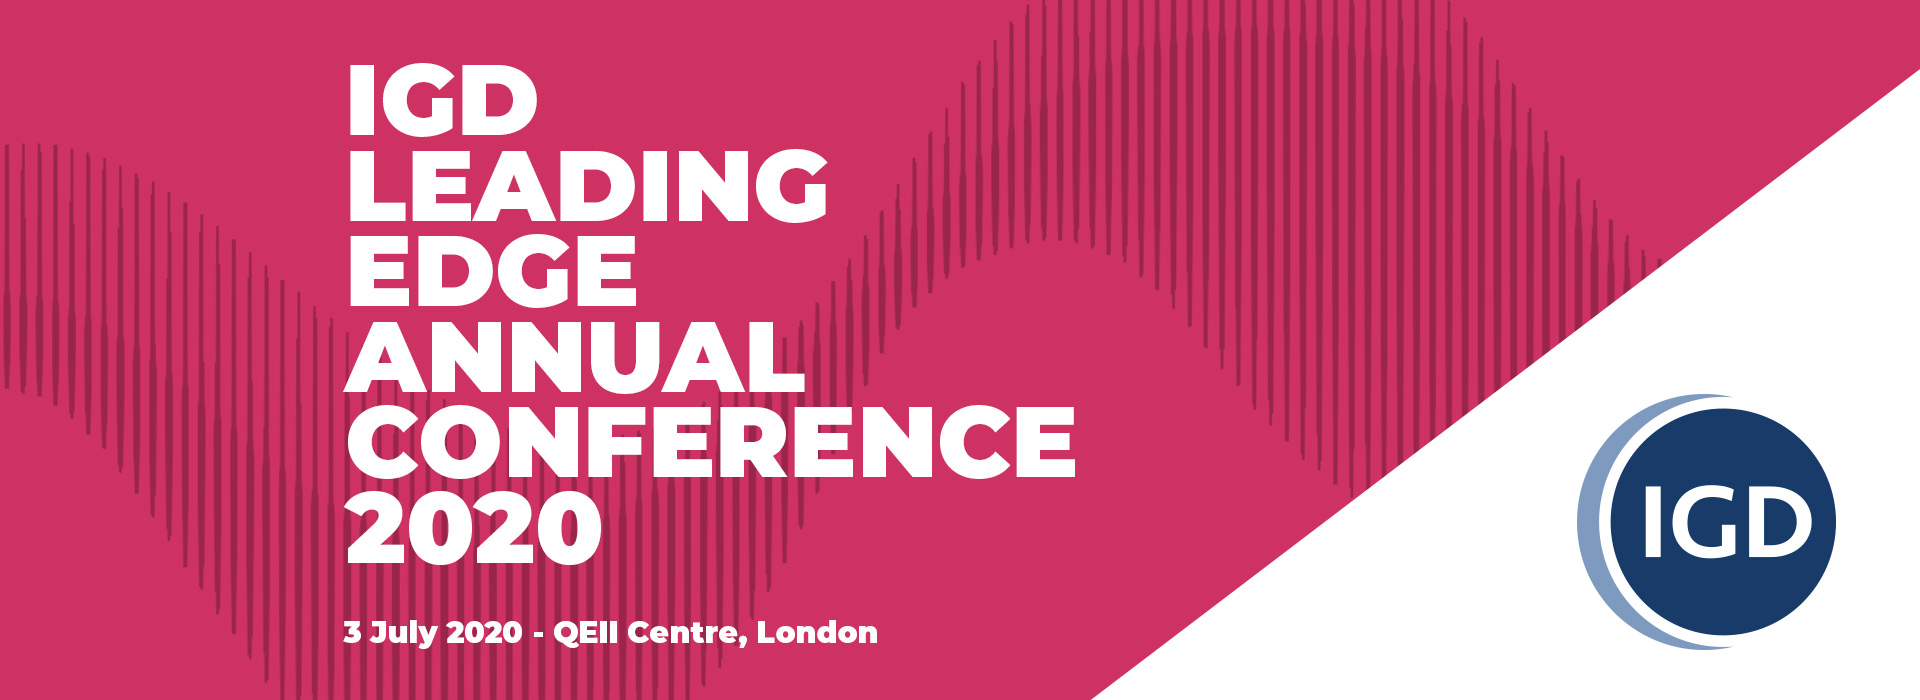 IGD Leading Edge Annual Conference header